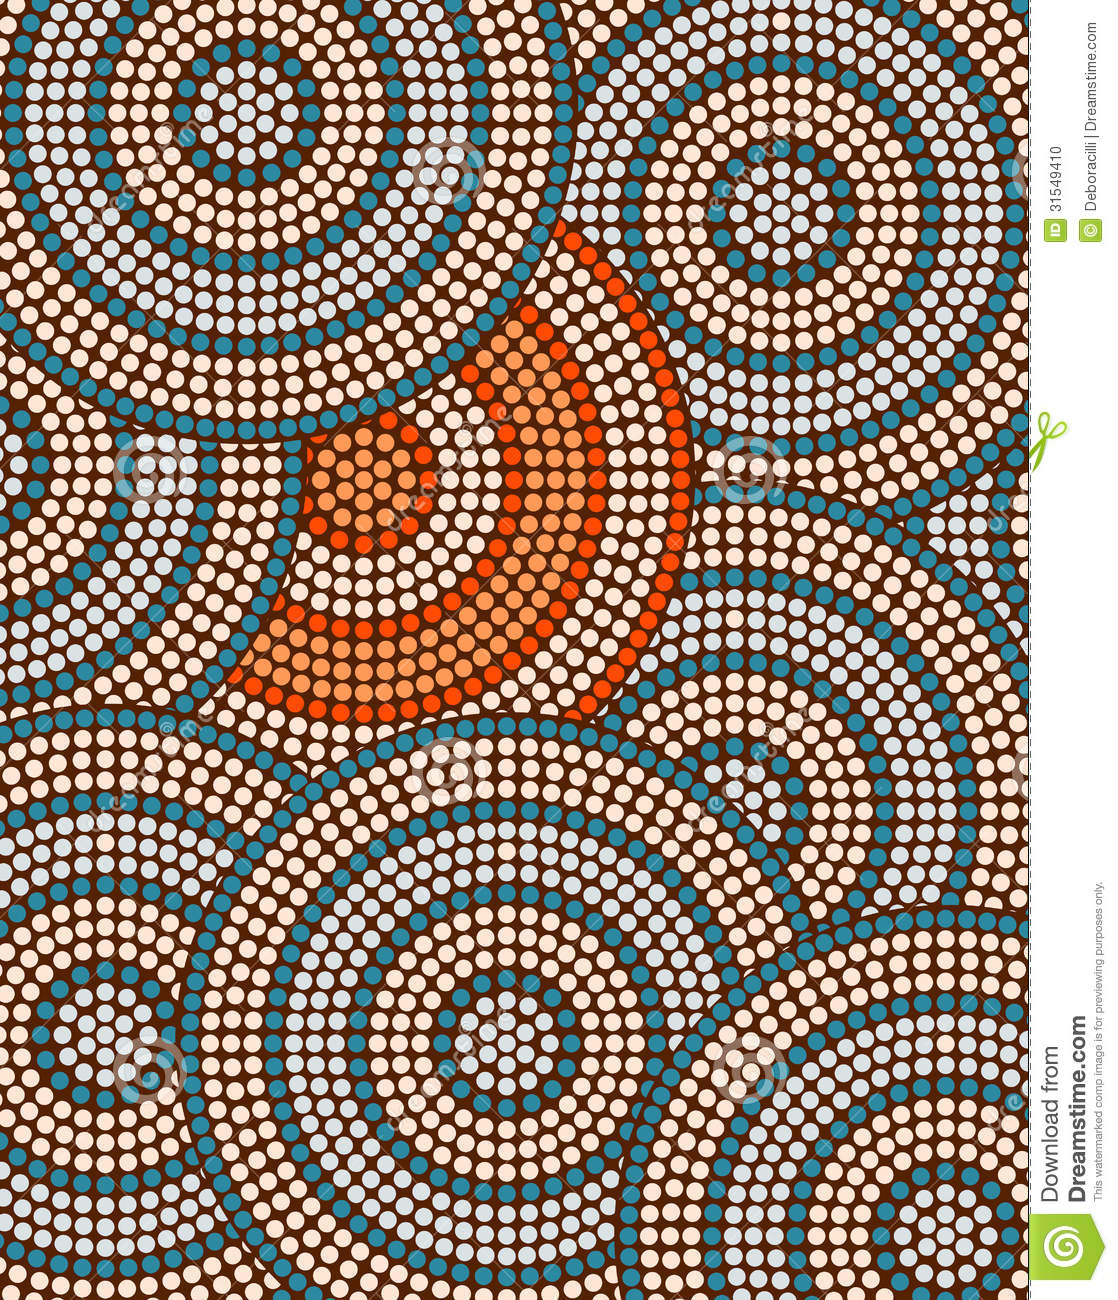 Pin Wallpaper aboriginal dot art design the traditional on 1118x1300